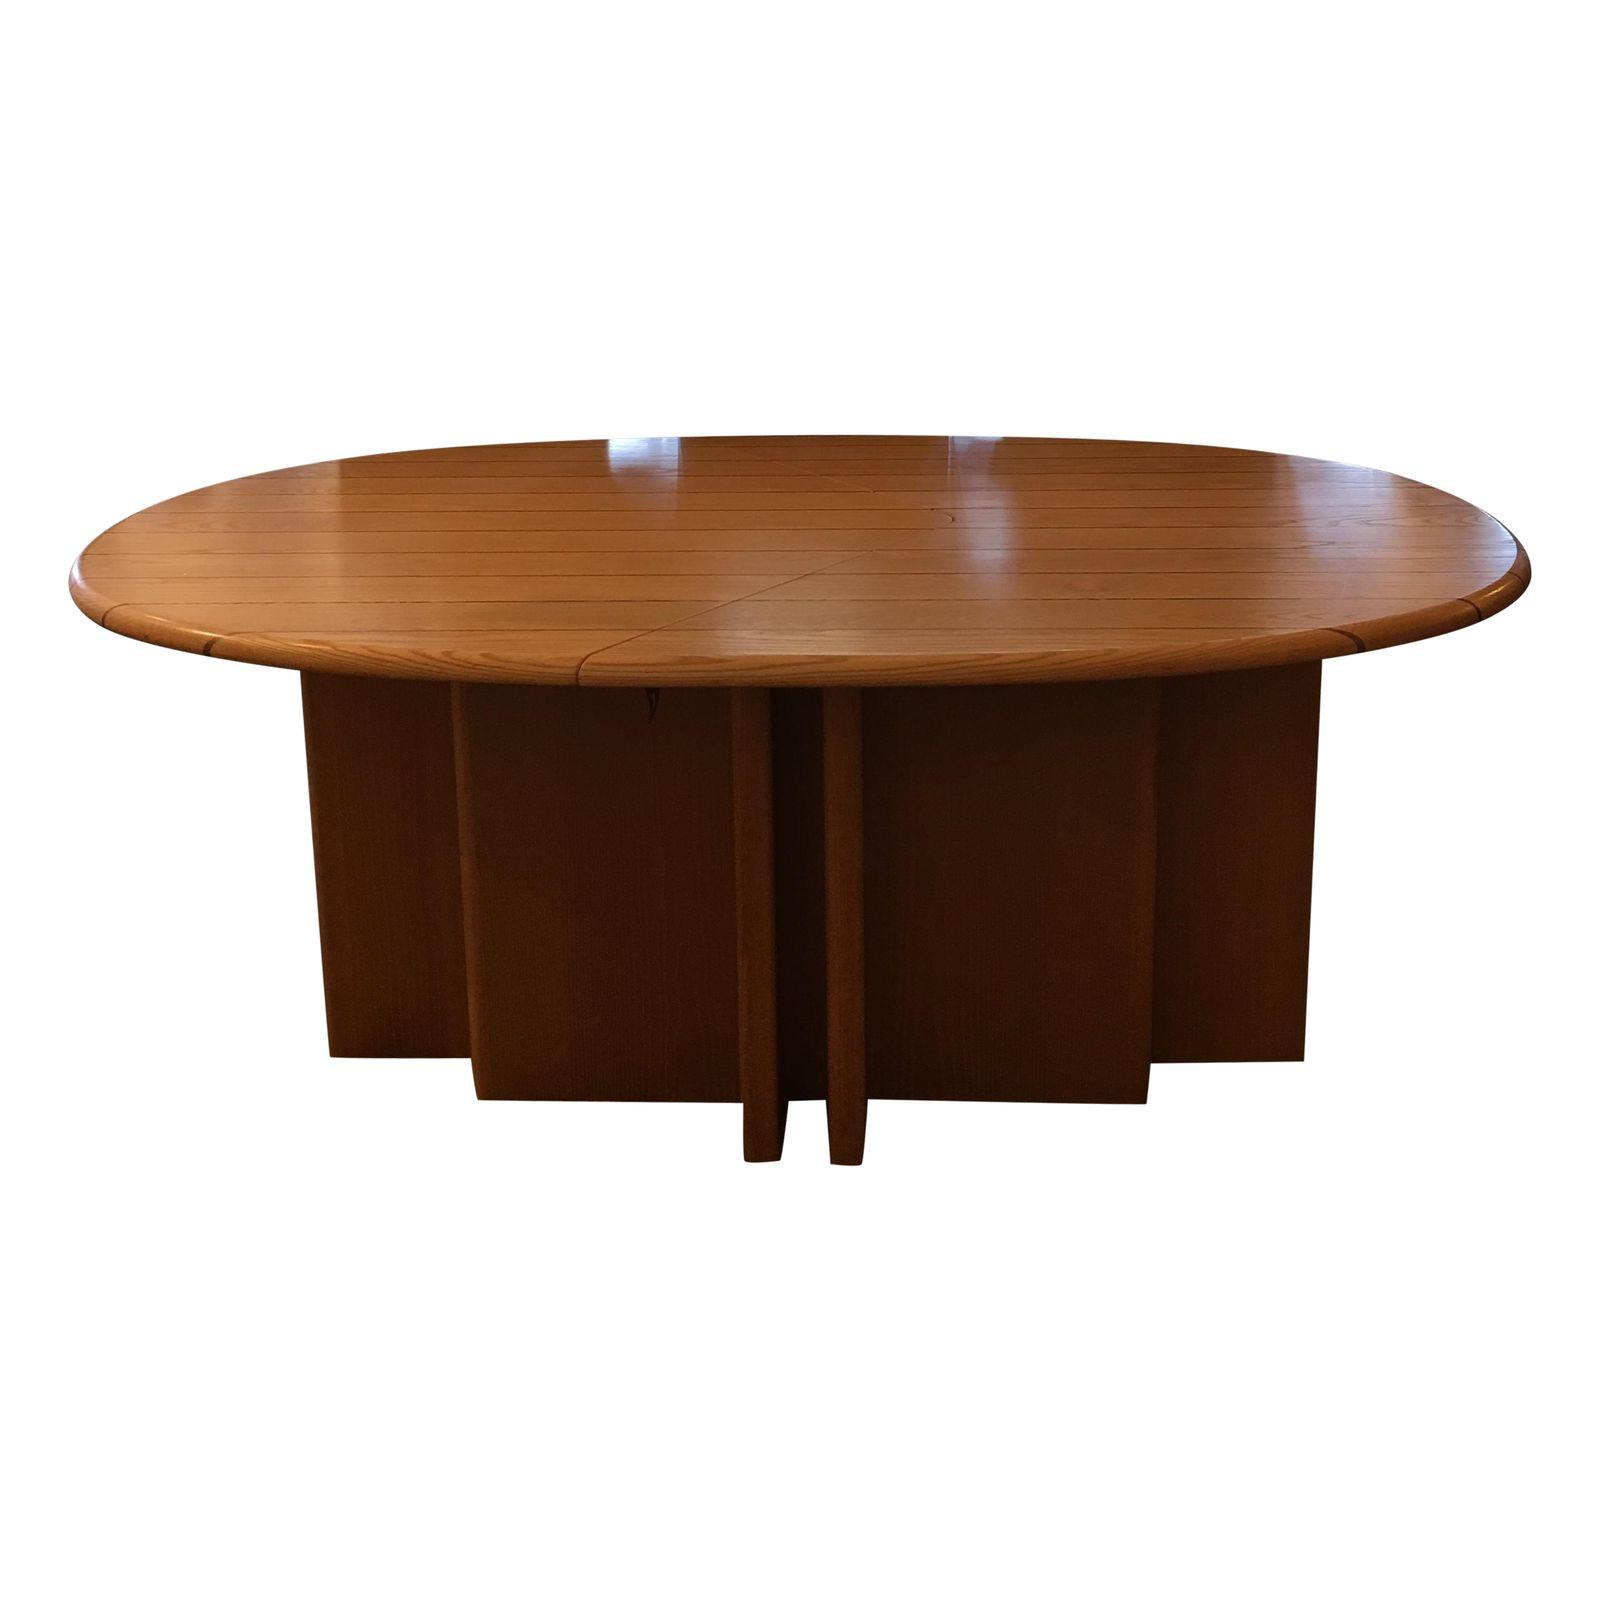 Scandinavian Designs Oval Dining Table Leaves Design Plus Gallery - Conference table with leaves